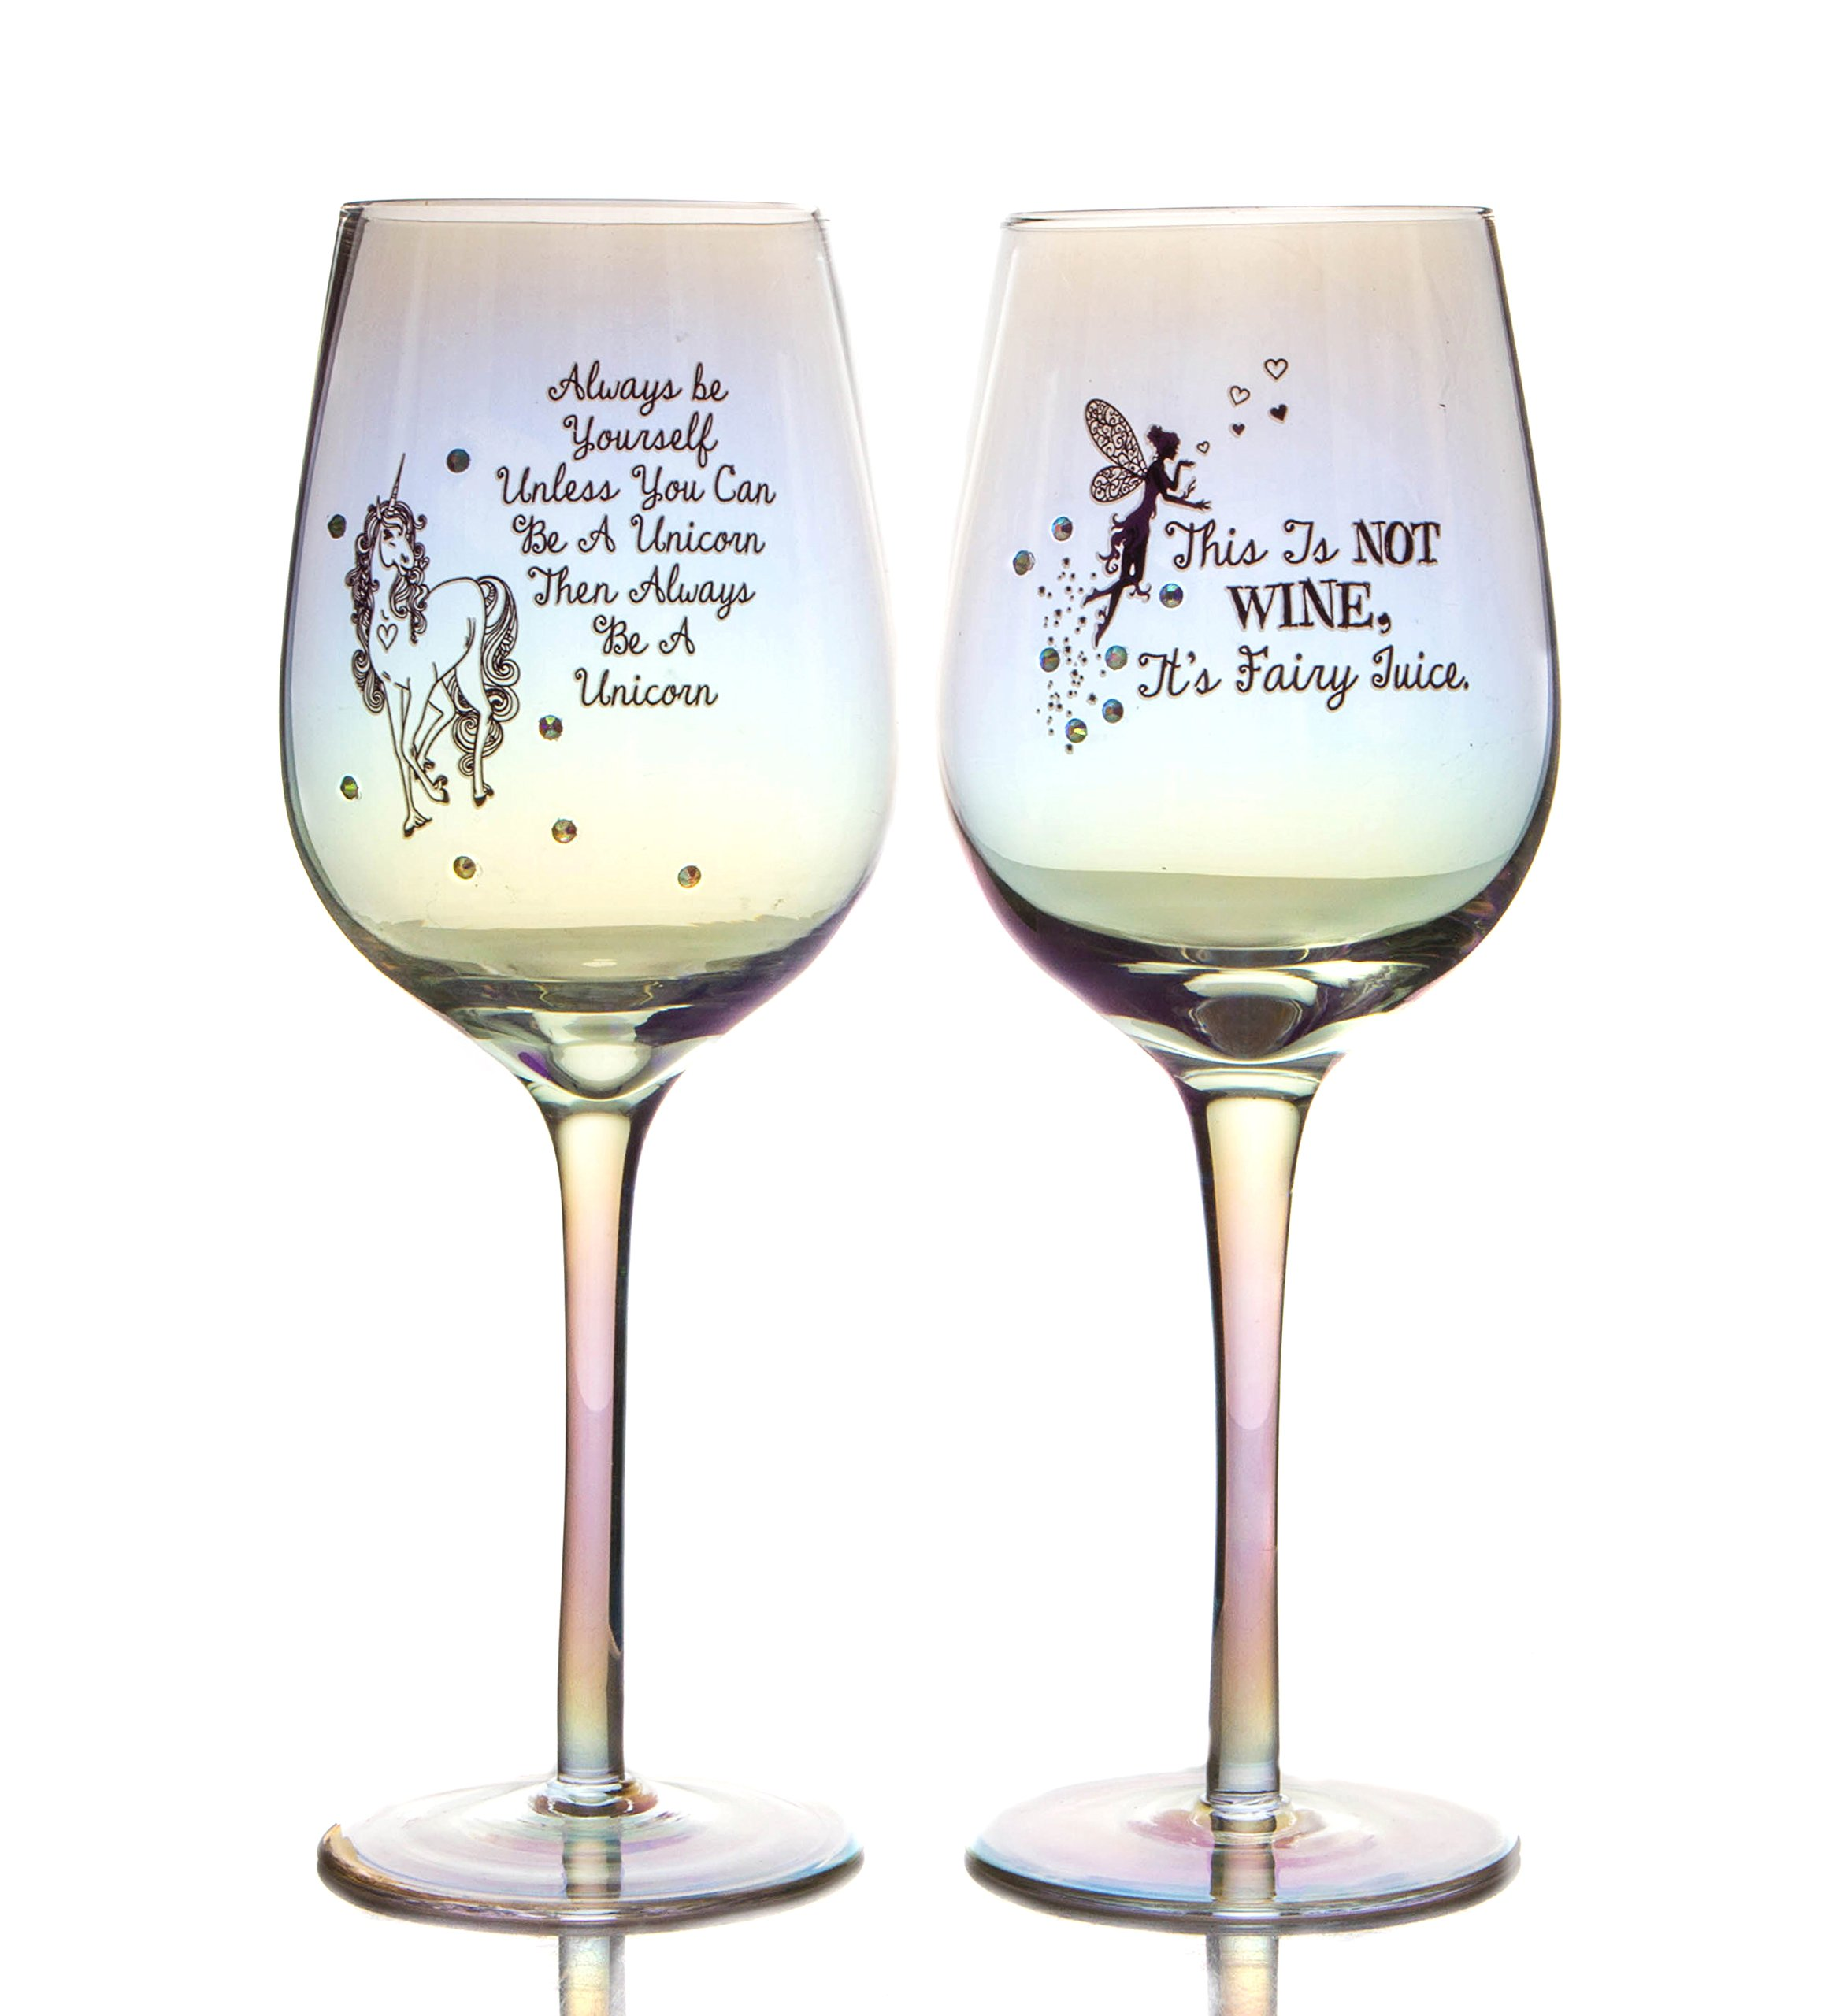 Boxer-Gifts-Lustre-Wine-Glass-BE-A-Unicorn-One